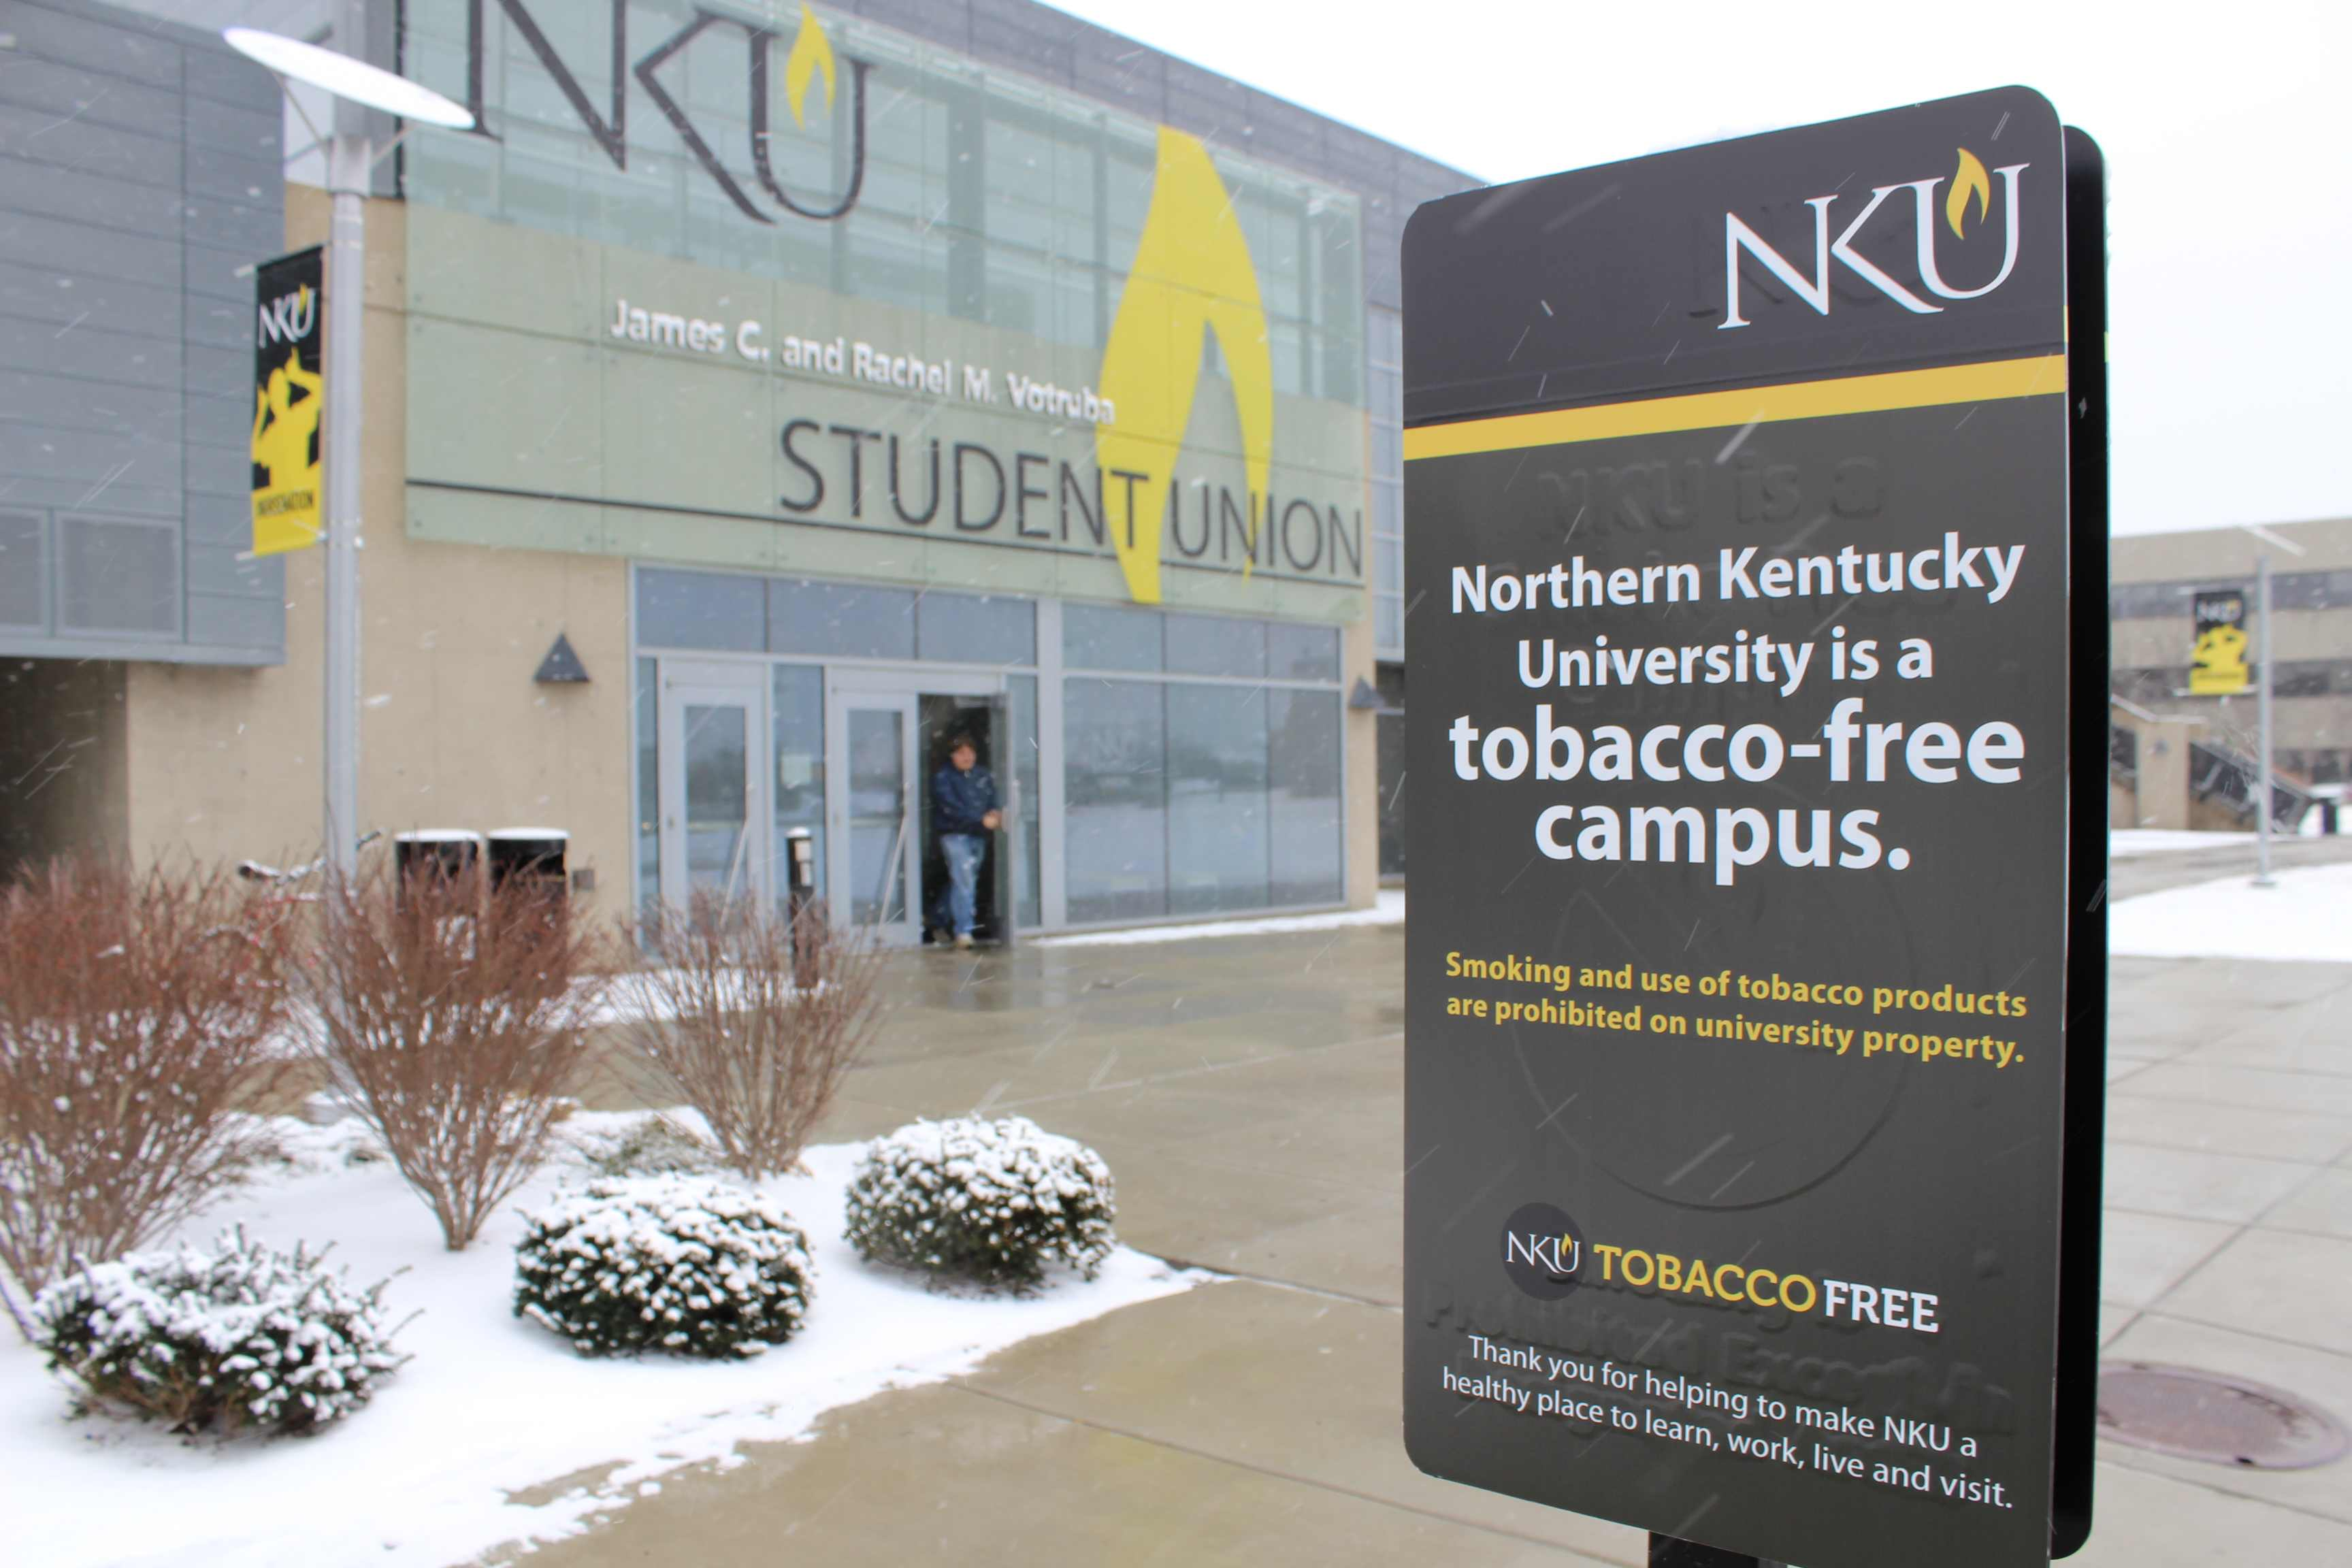 Tobacco-free marketing near one of many former smoking hot spots on campus. On January 1, 2014 Northern Kentucky University became a tobacco-free campus.